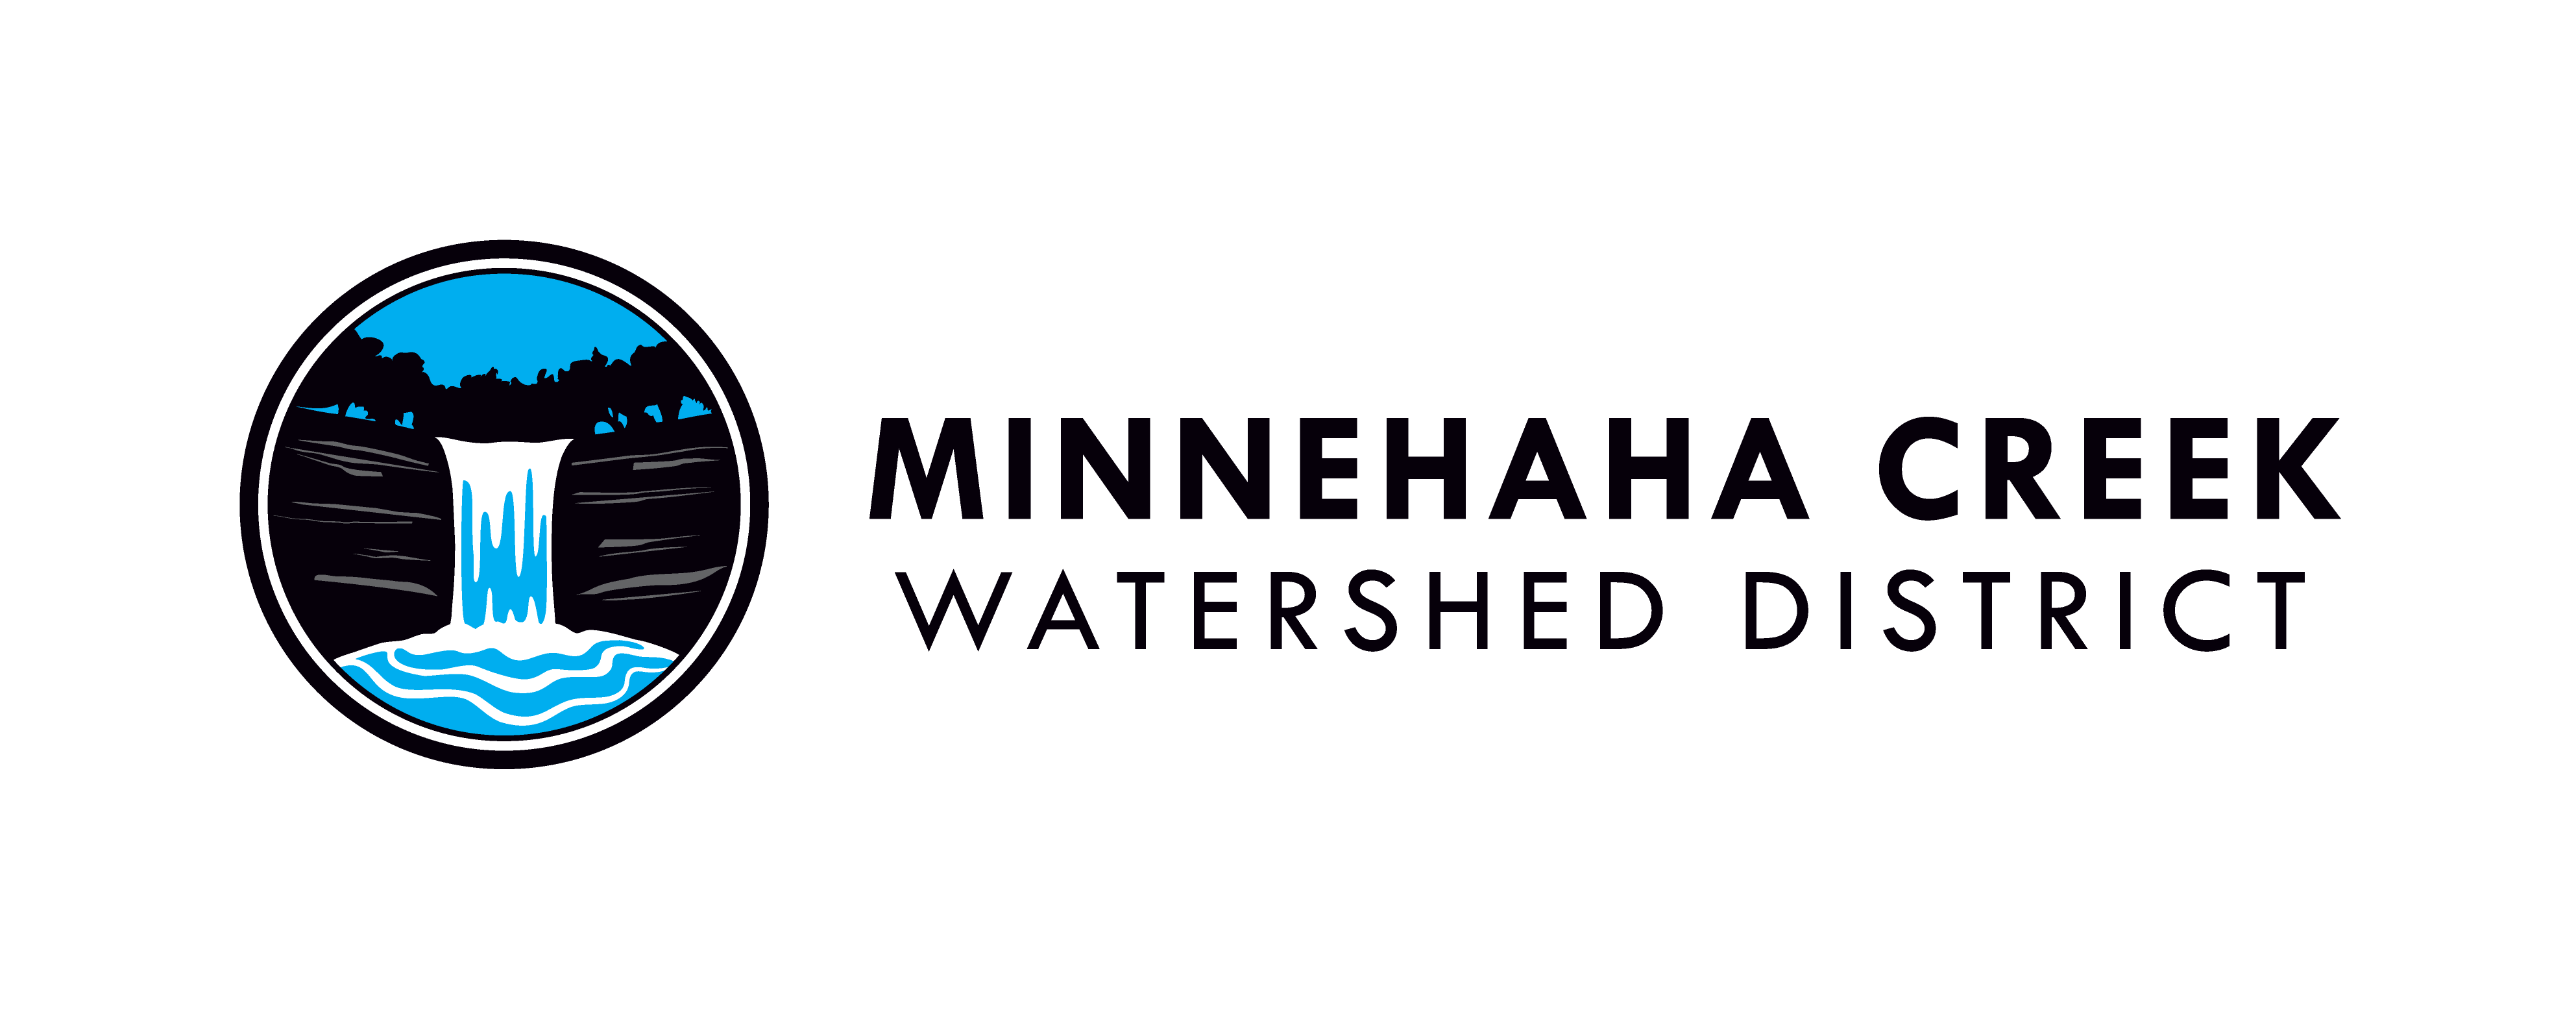 USGS Current Conditions for USGS 05289800 MINNEHAHA CREEK